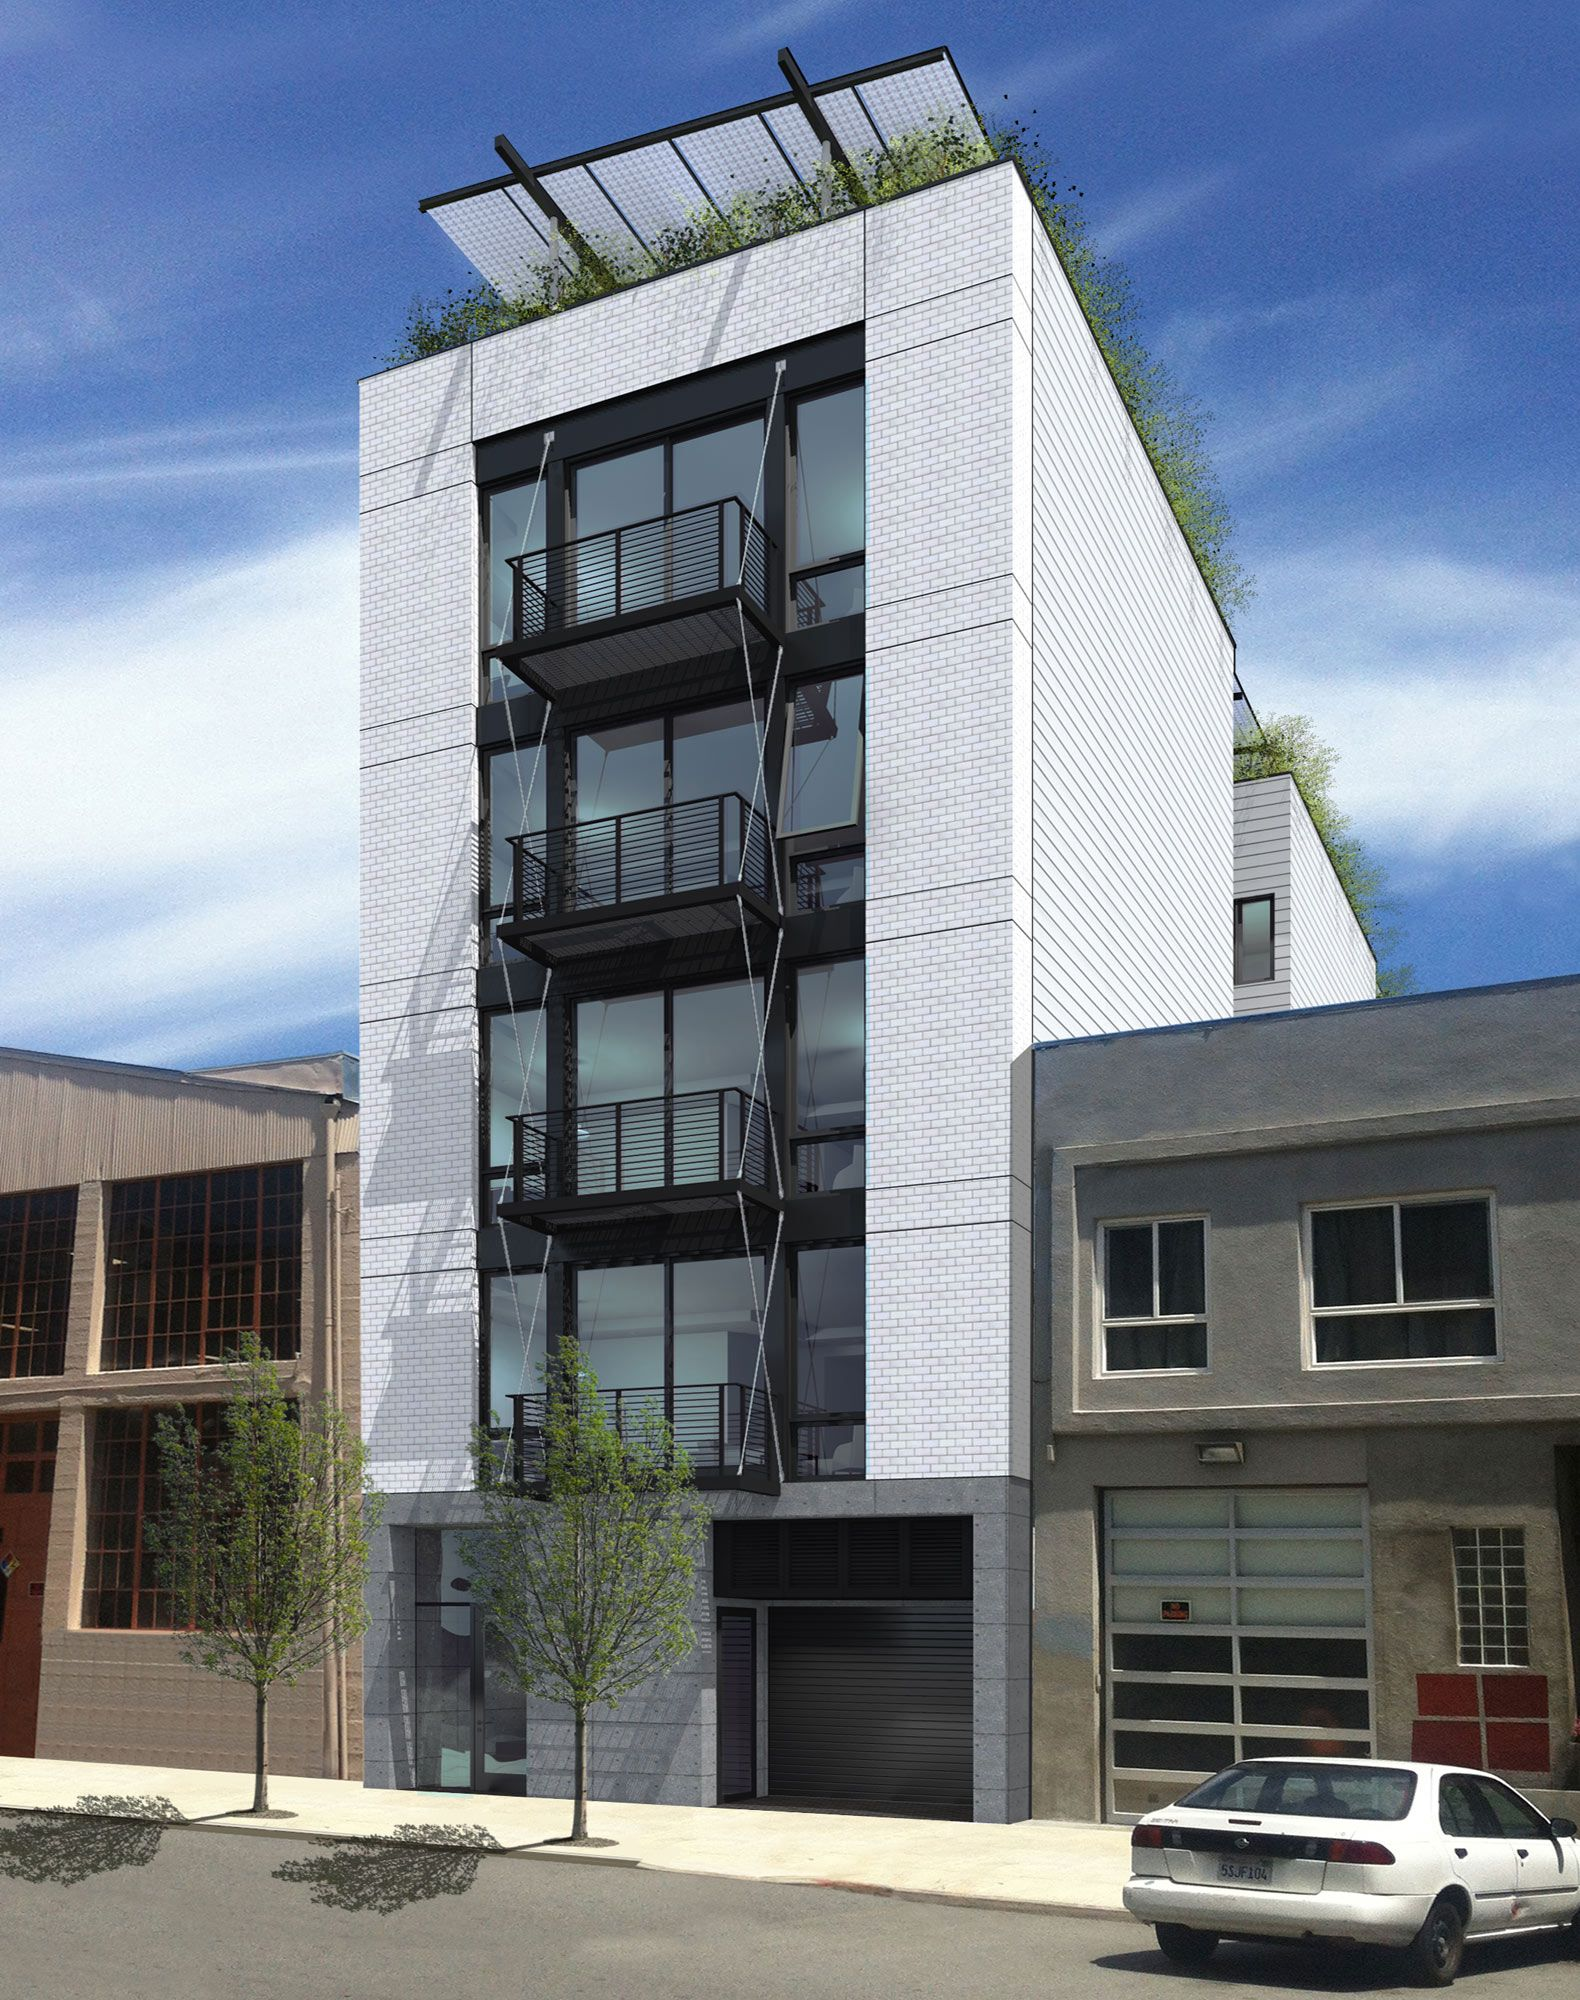 San francisco 39 s first passive house apartment complex for Apartment building design ideas